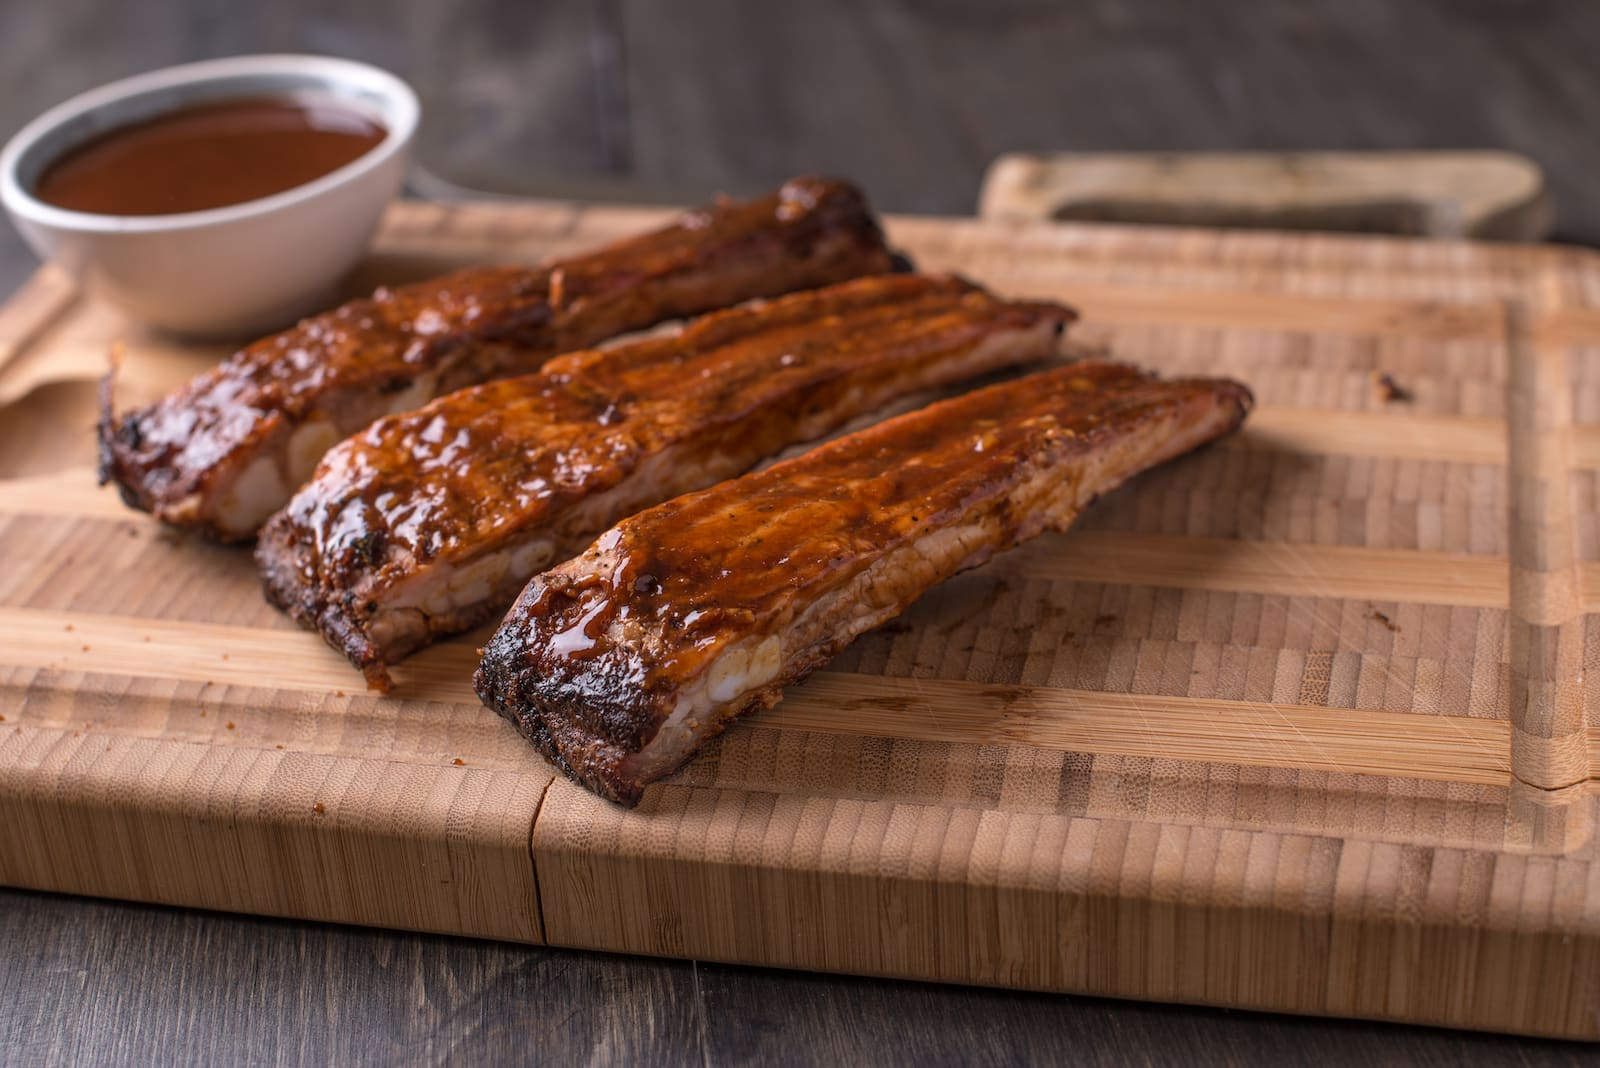 What Are The Best Spices For Ribs?